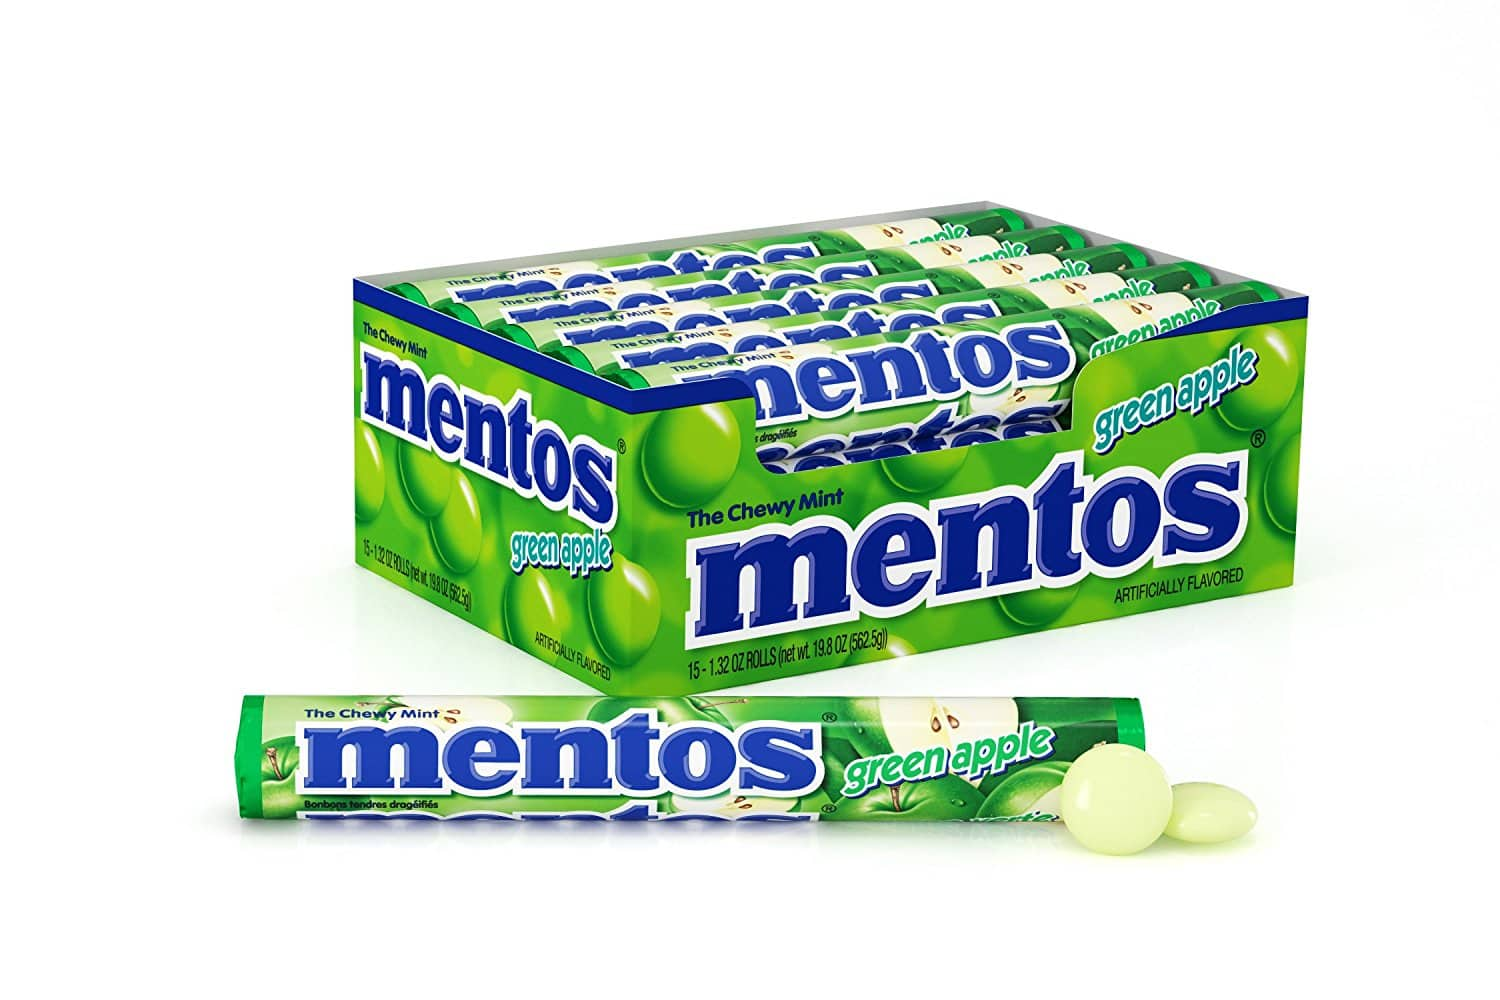 15-Pack of 1.32oz Mentos Chewy Mint Candy Roll (Green Apple) $6.45 or Less w/ S&S & More + Free Shipping ~ Amazon